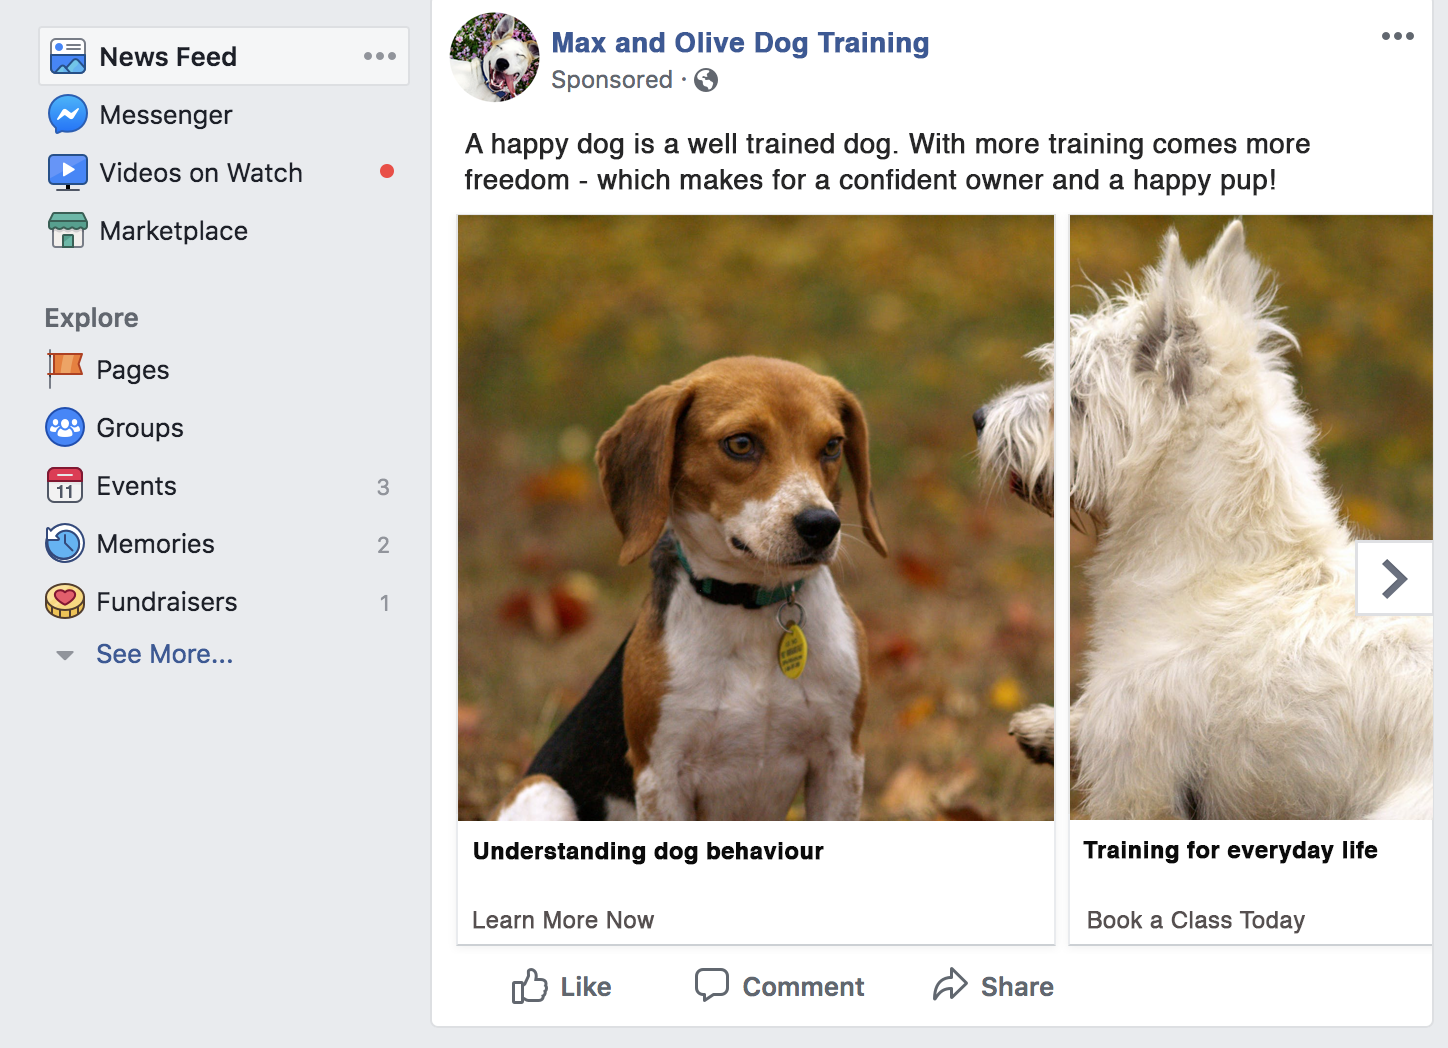 An advertisement such as this example may target users who included dog or pet-related stores, items, or activities in their interests